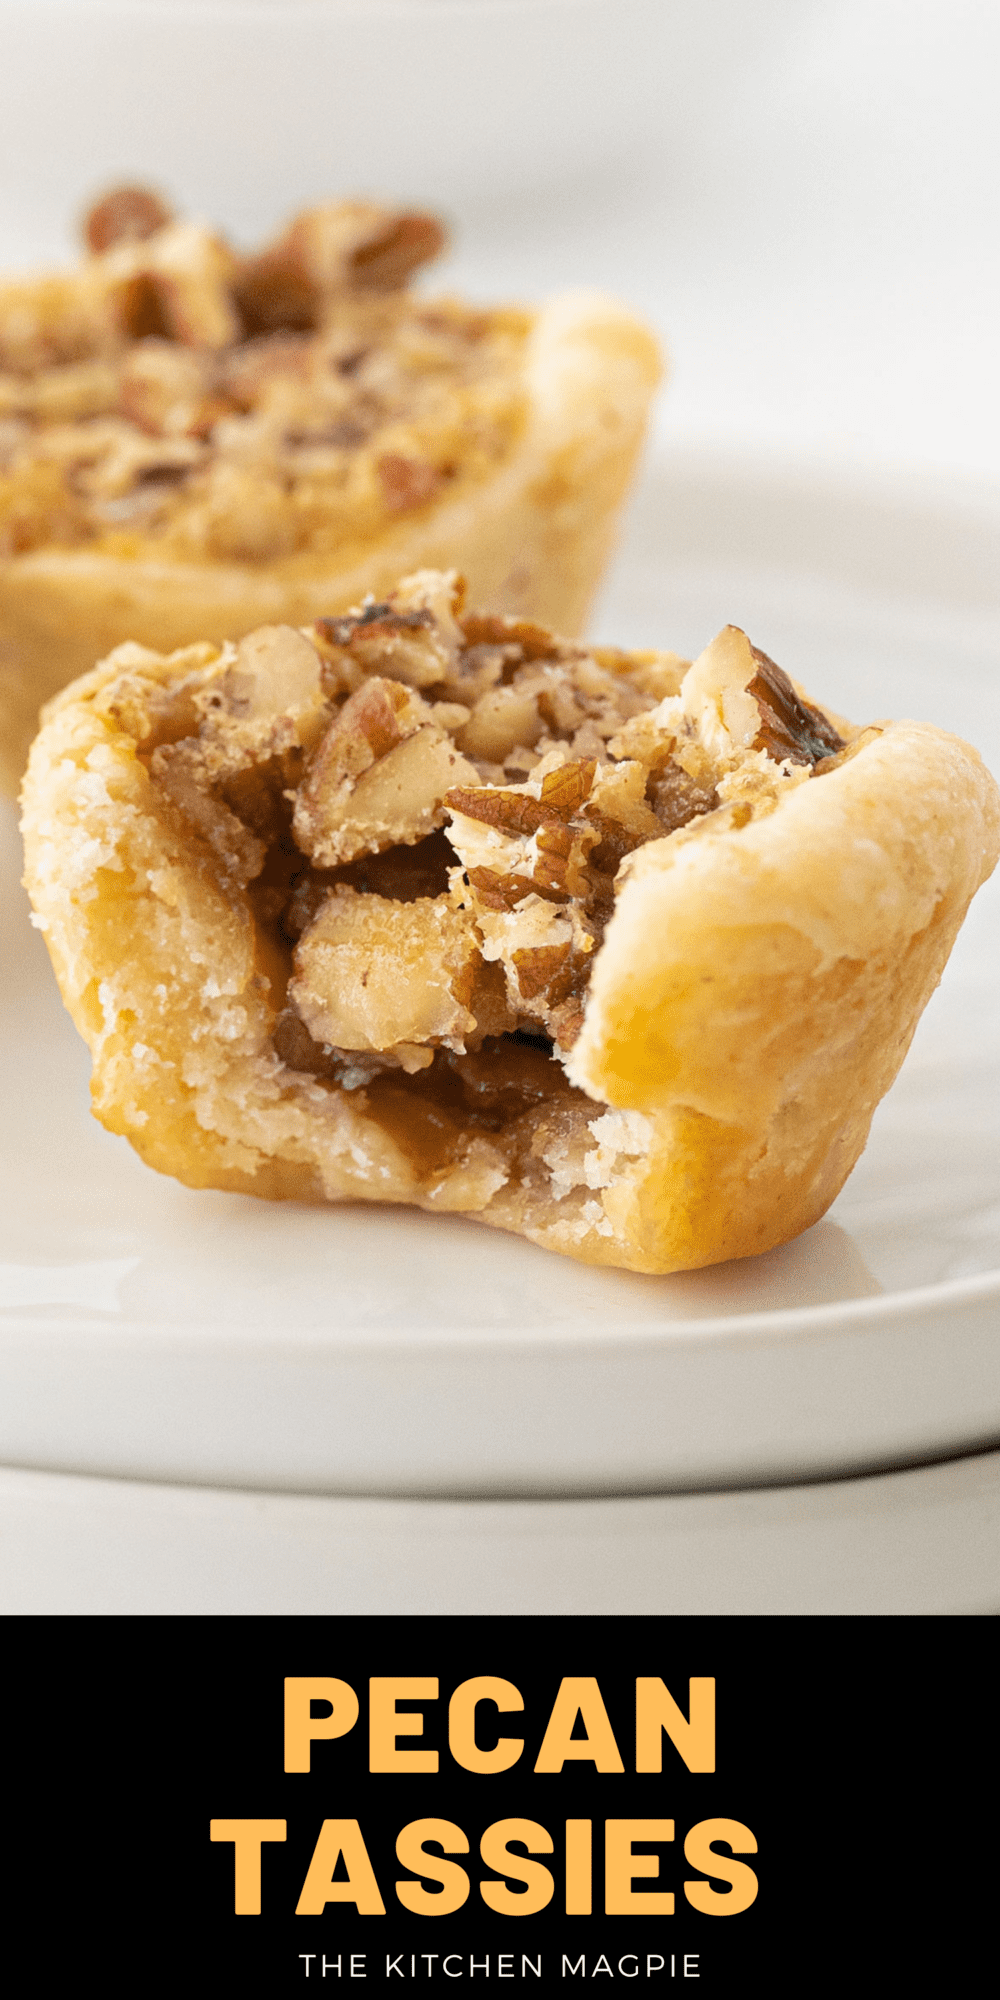 Pecan tassies are delicious little pecan tarts made with a cream cheese pastry and baked up with a syrupy brown sugar pecan filling!